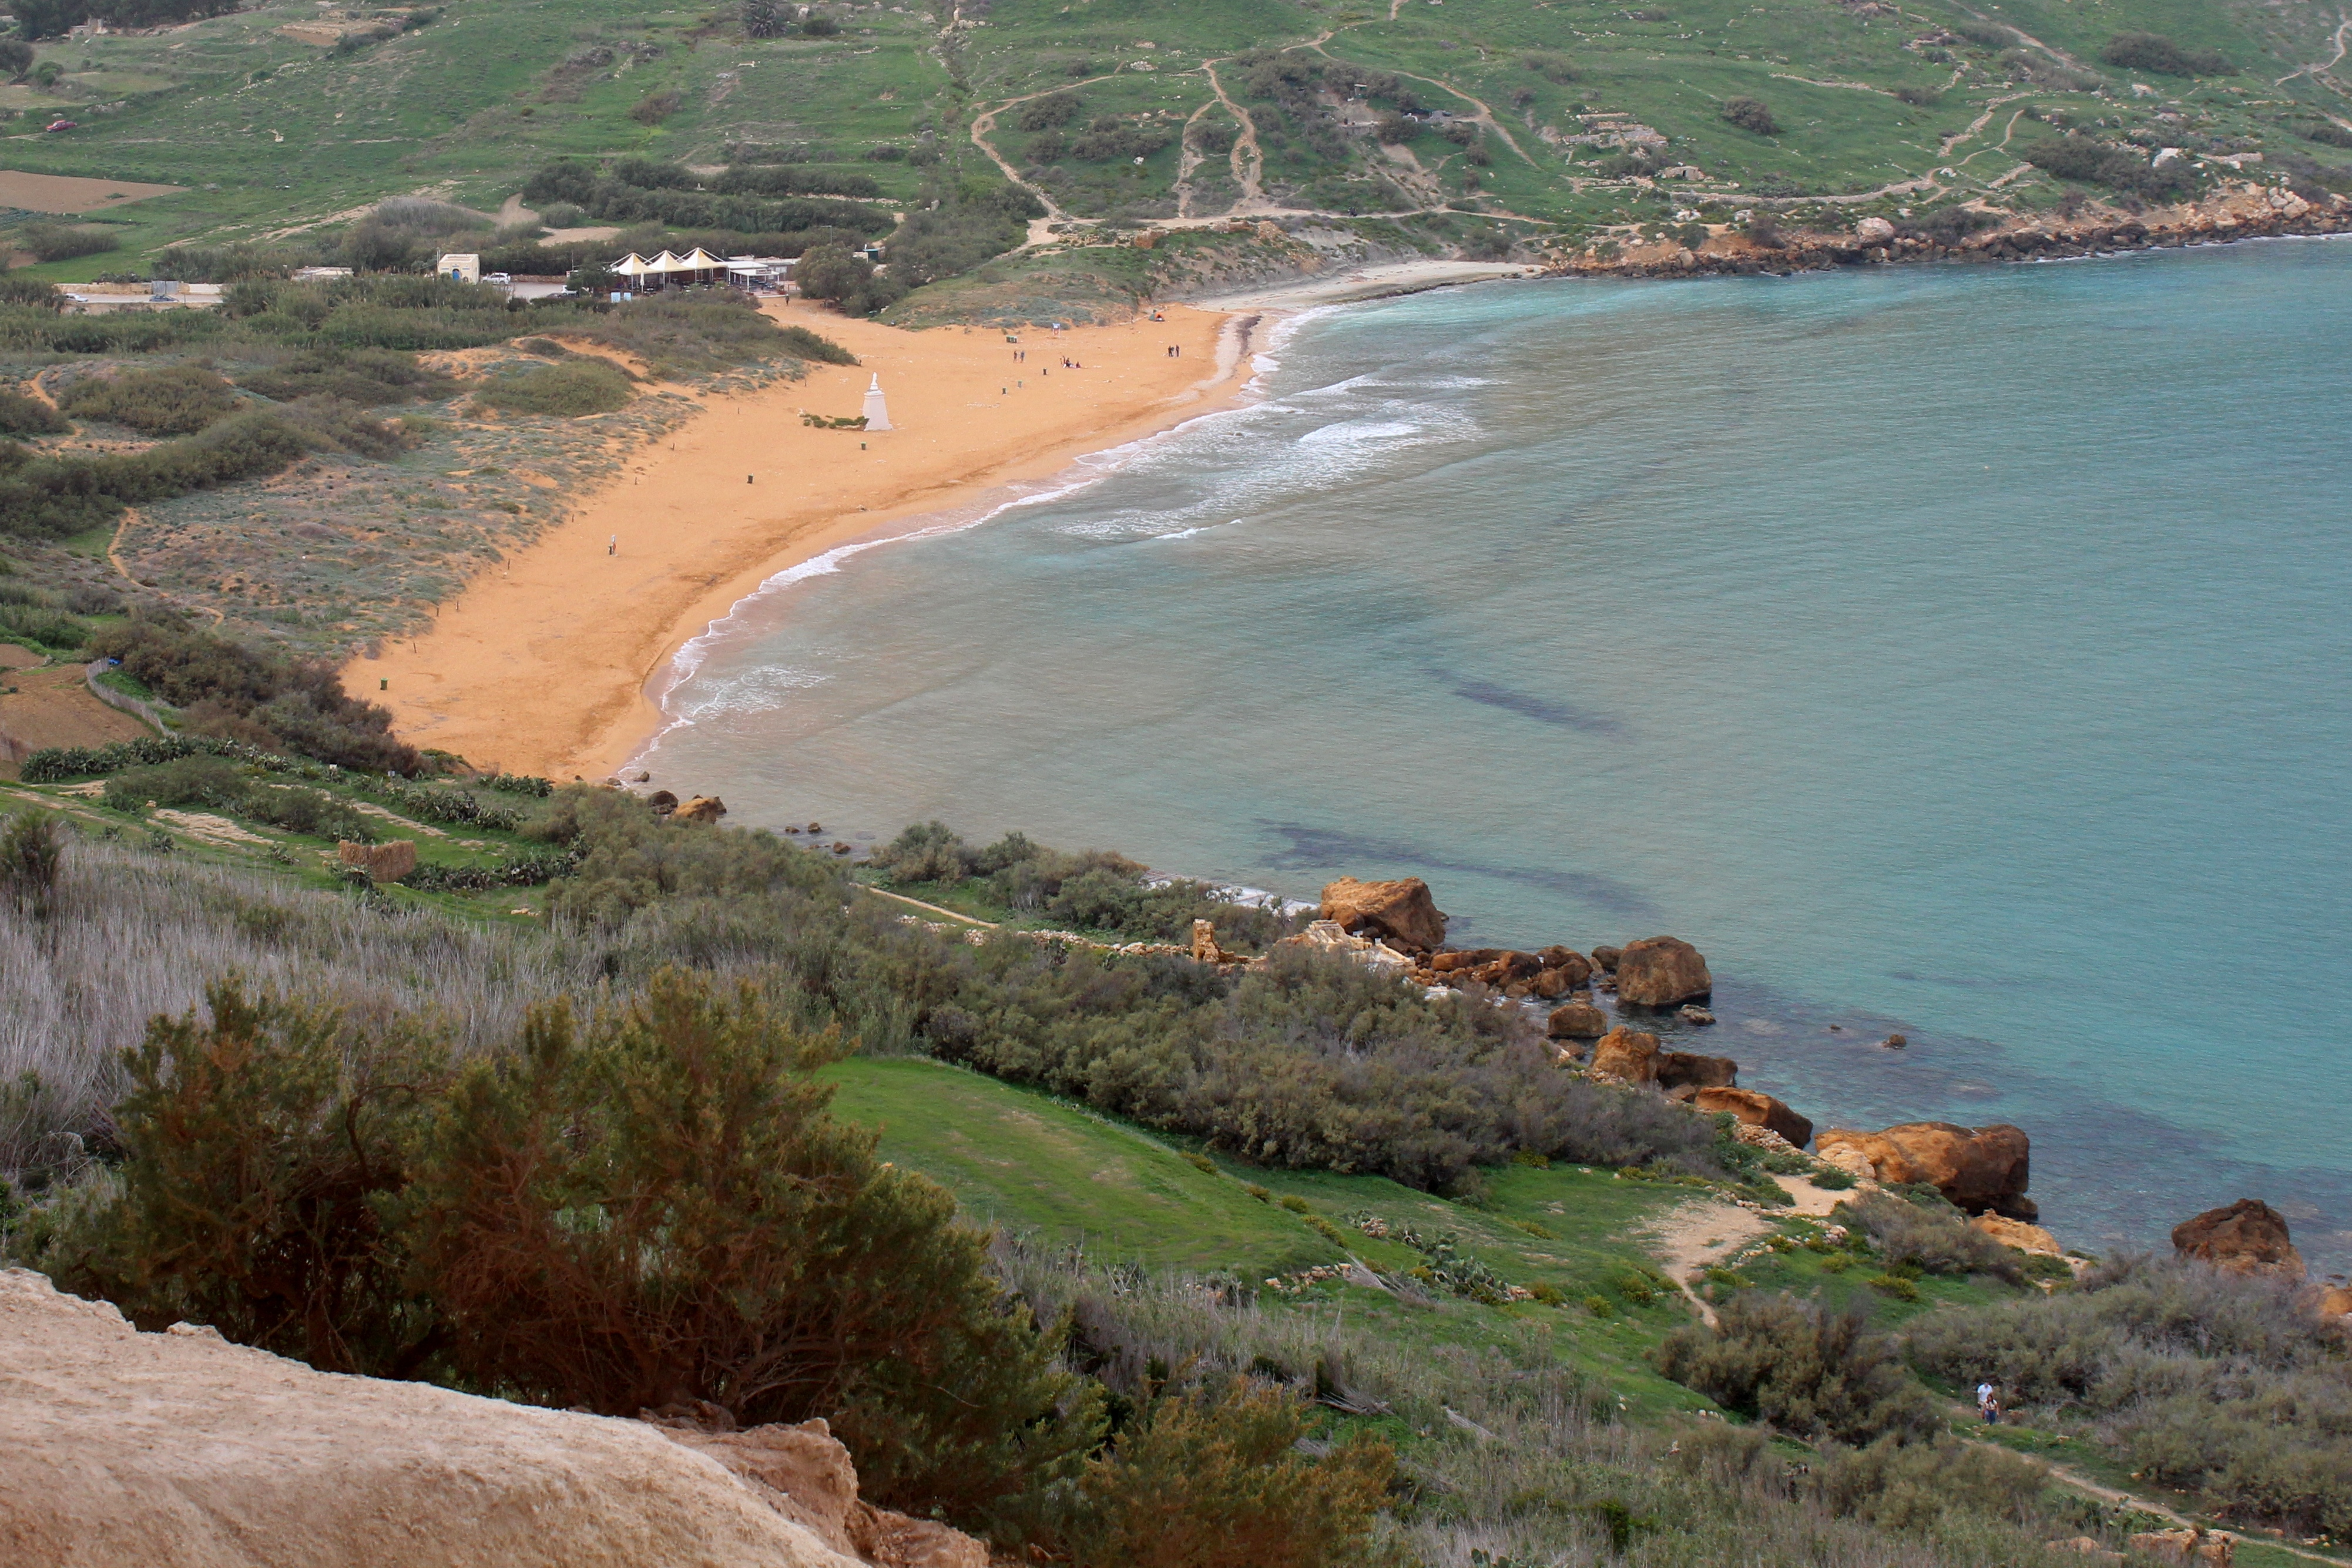 View of Ramla Bay from Tal-Mixta Cave